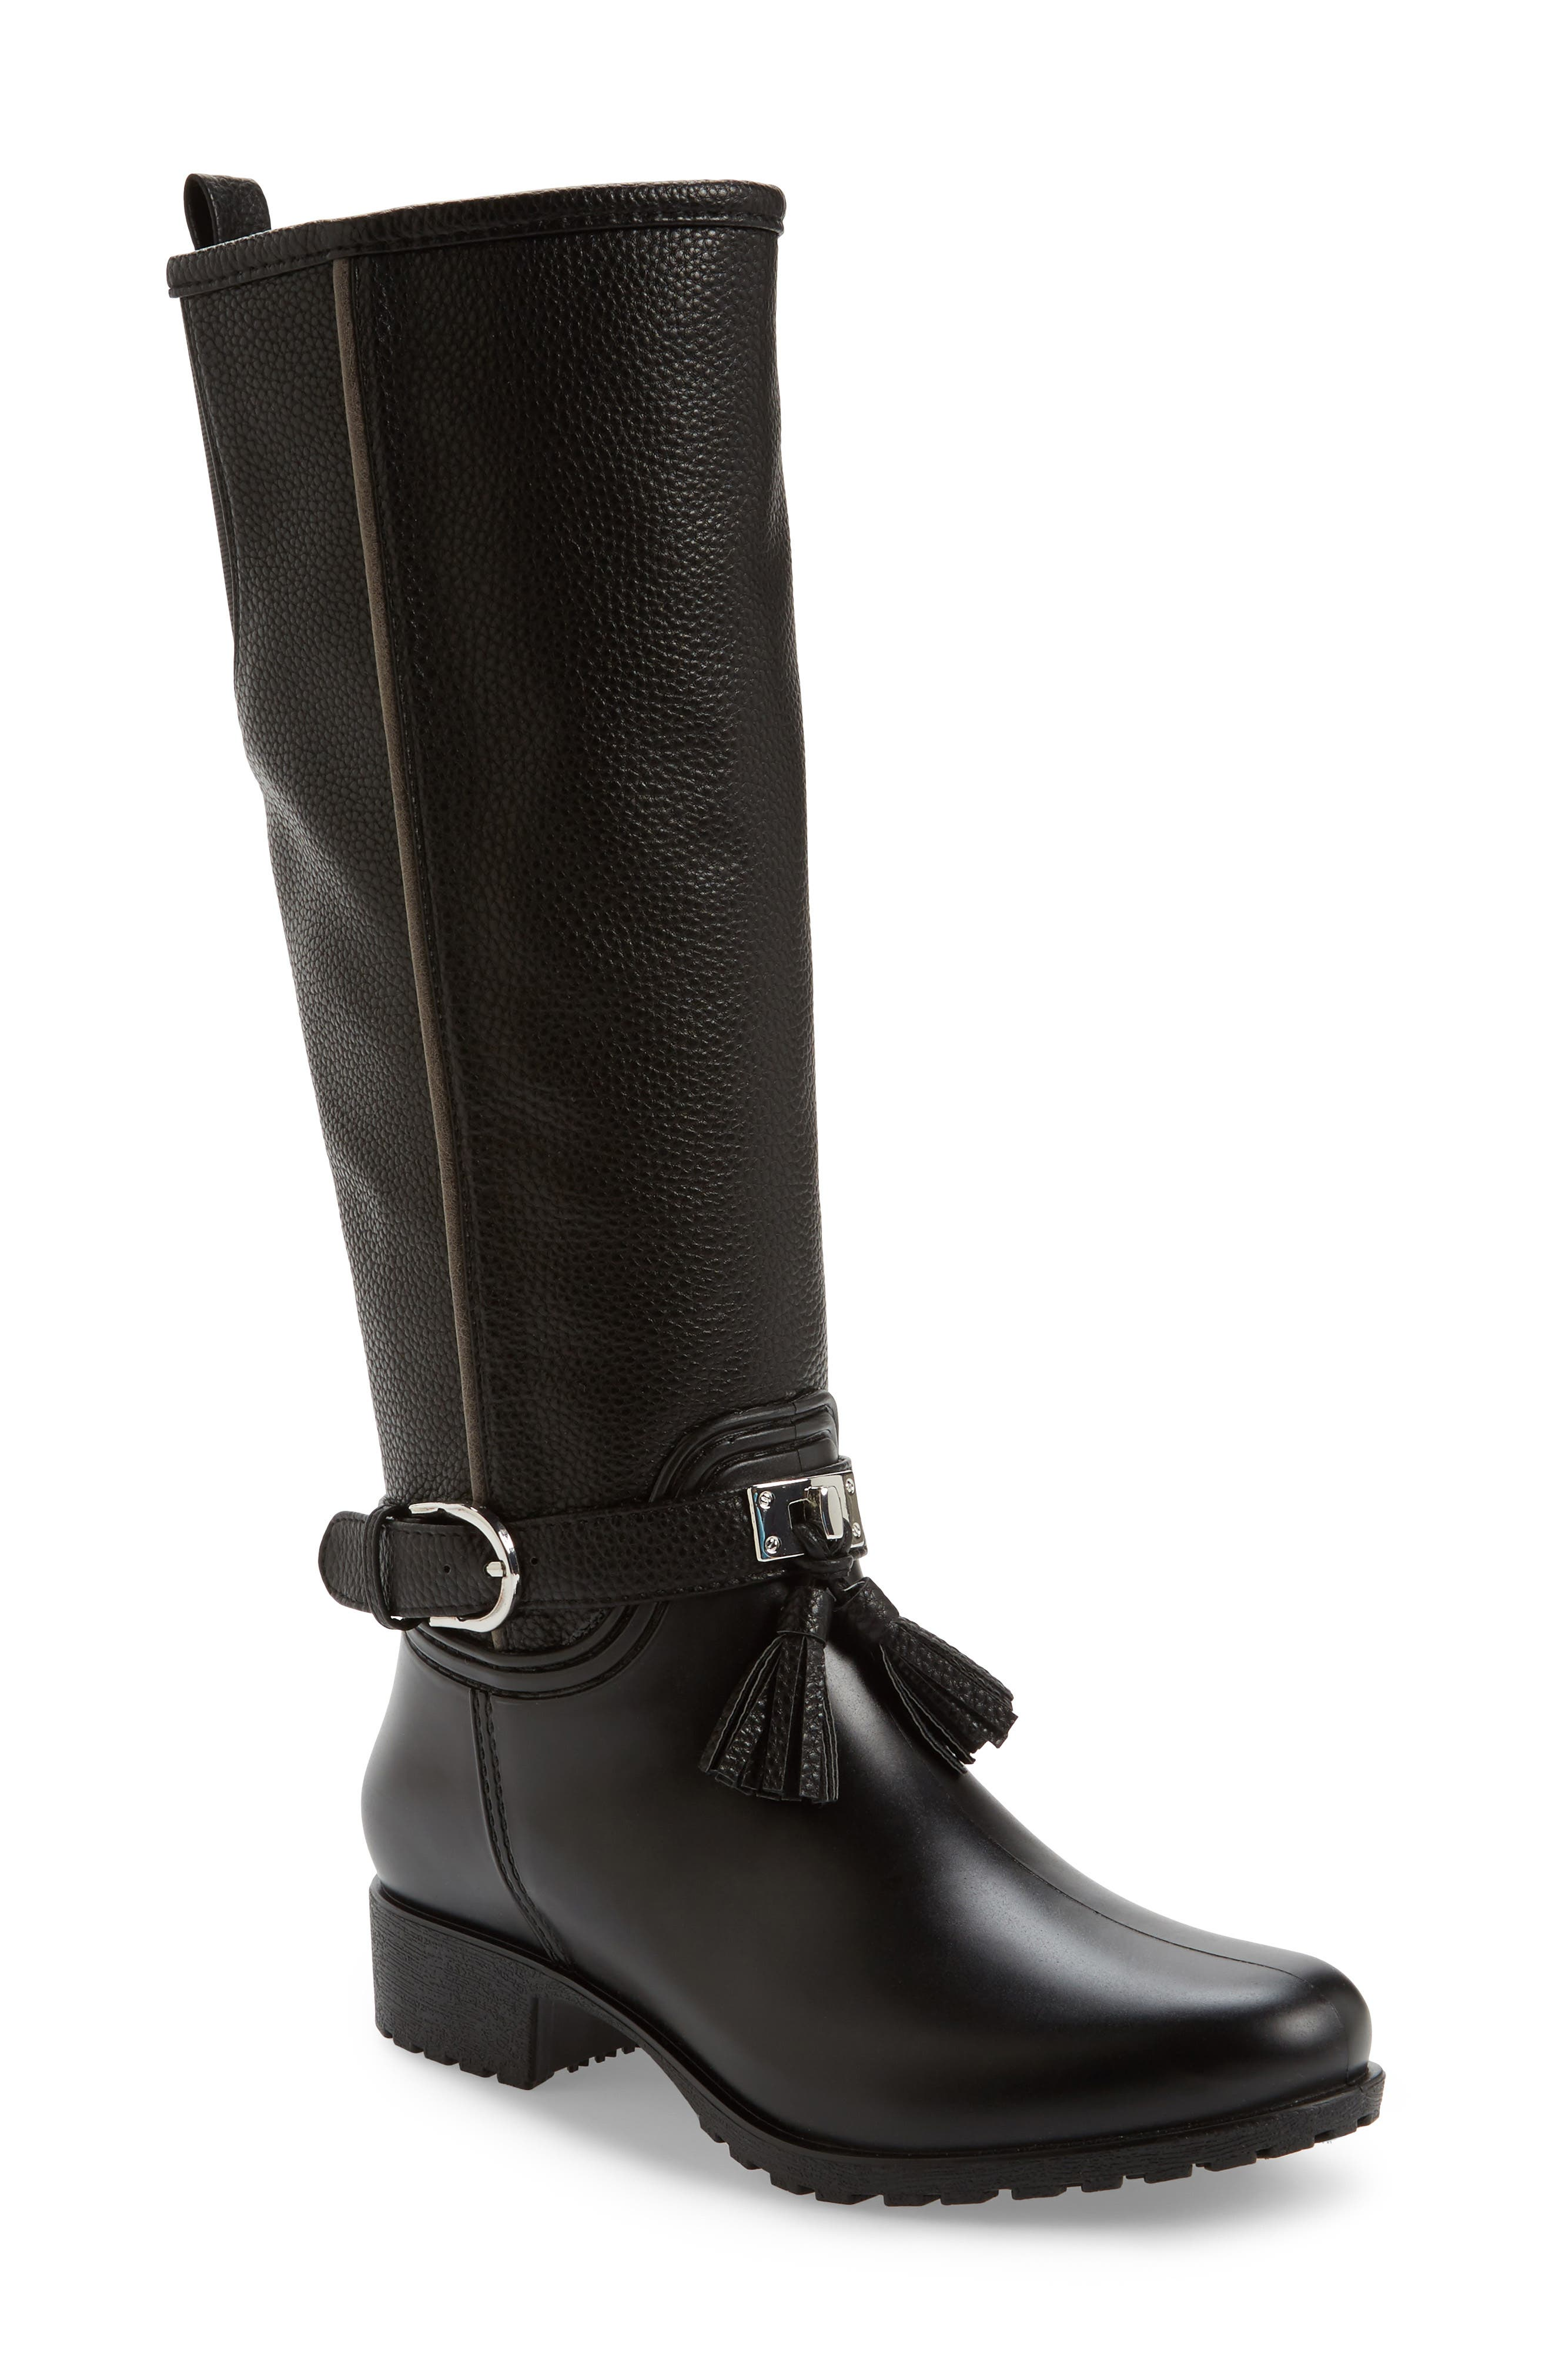 DÄV, Inverness Faux Shearling Lined Water Resistant Boot, Main thumbnail 1, color, BLACK